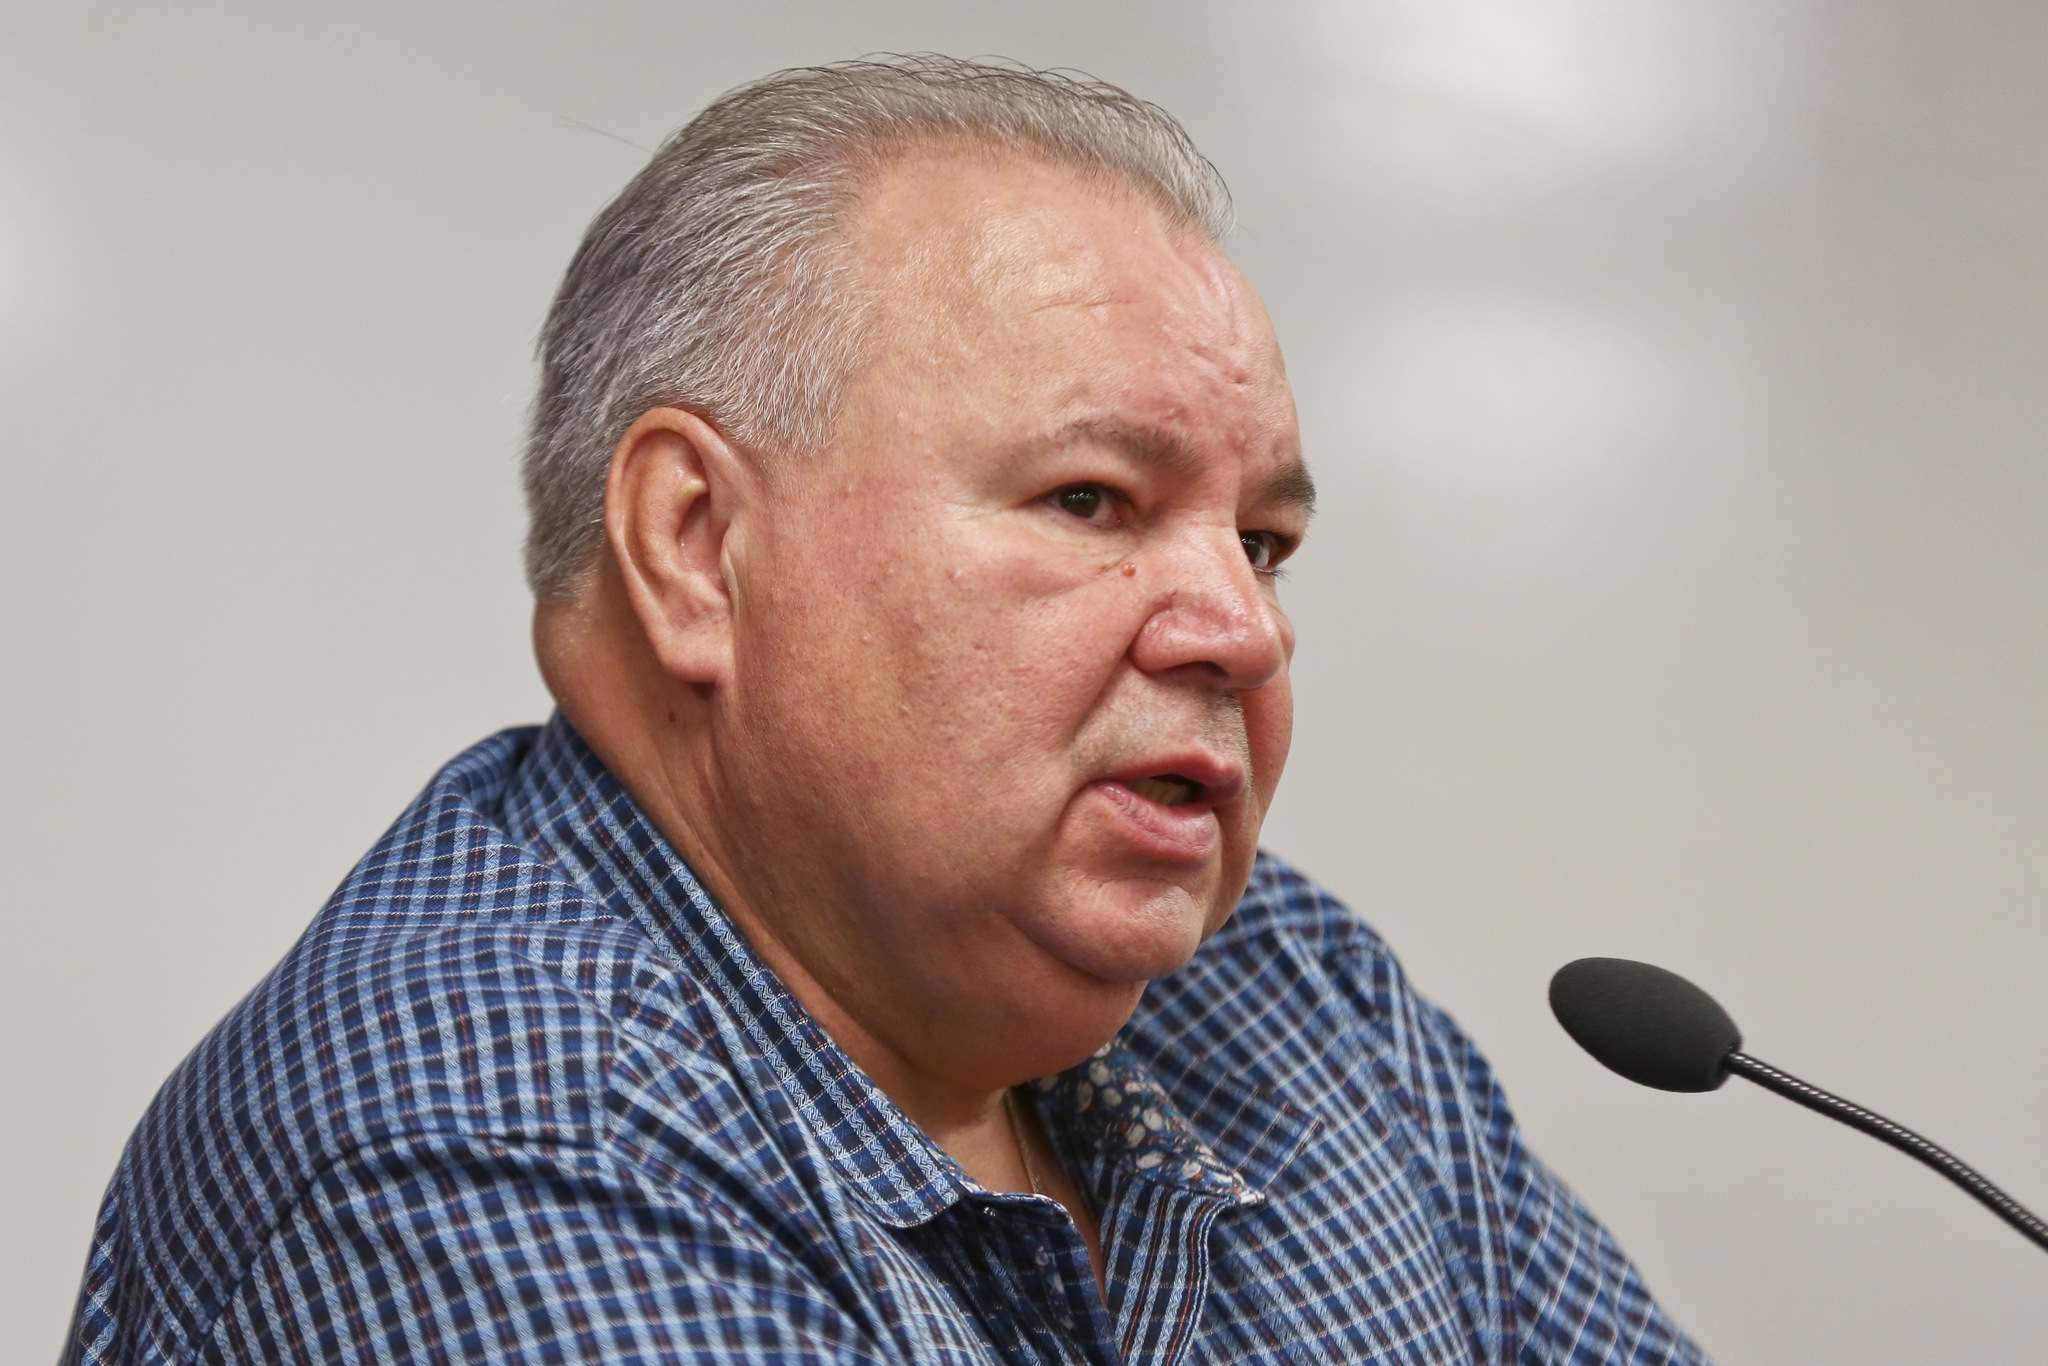 """MIKE DEAL / WINNIPEG FREE PRESS</p><p>""""You can't just cancel agreements after the fact,"""" Manitoba Metis Federation president David Chartrand said. """"If that's the case, every First Nation in the country, every industry must be paranoid.""""</p>"""